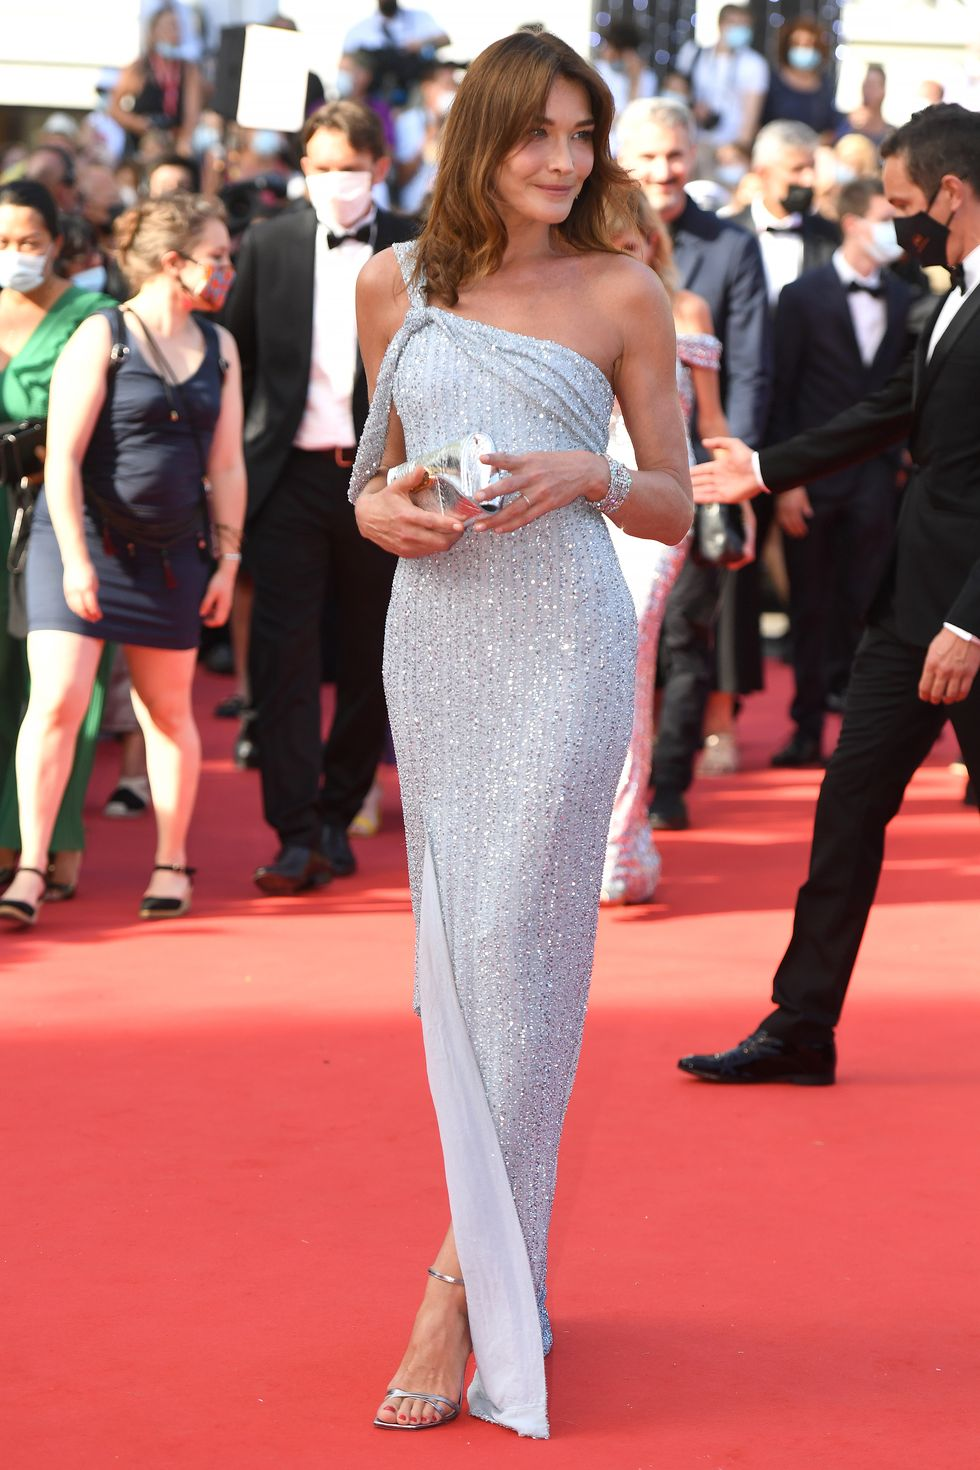 Carla Bruni Carla Bruni chose a one-shoulder sequin dress by Celine, and heels in the same color as the dress.